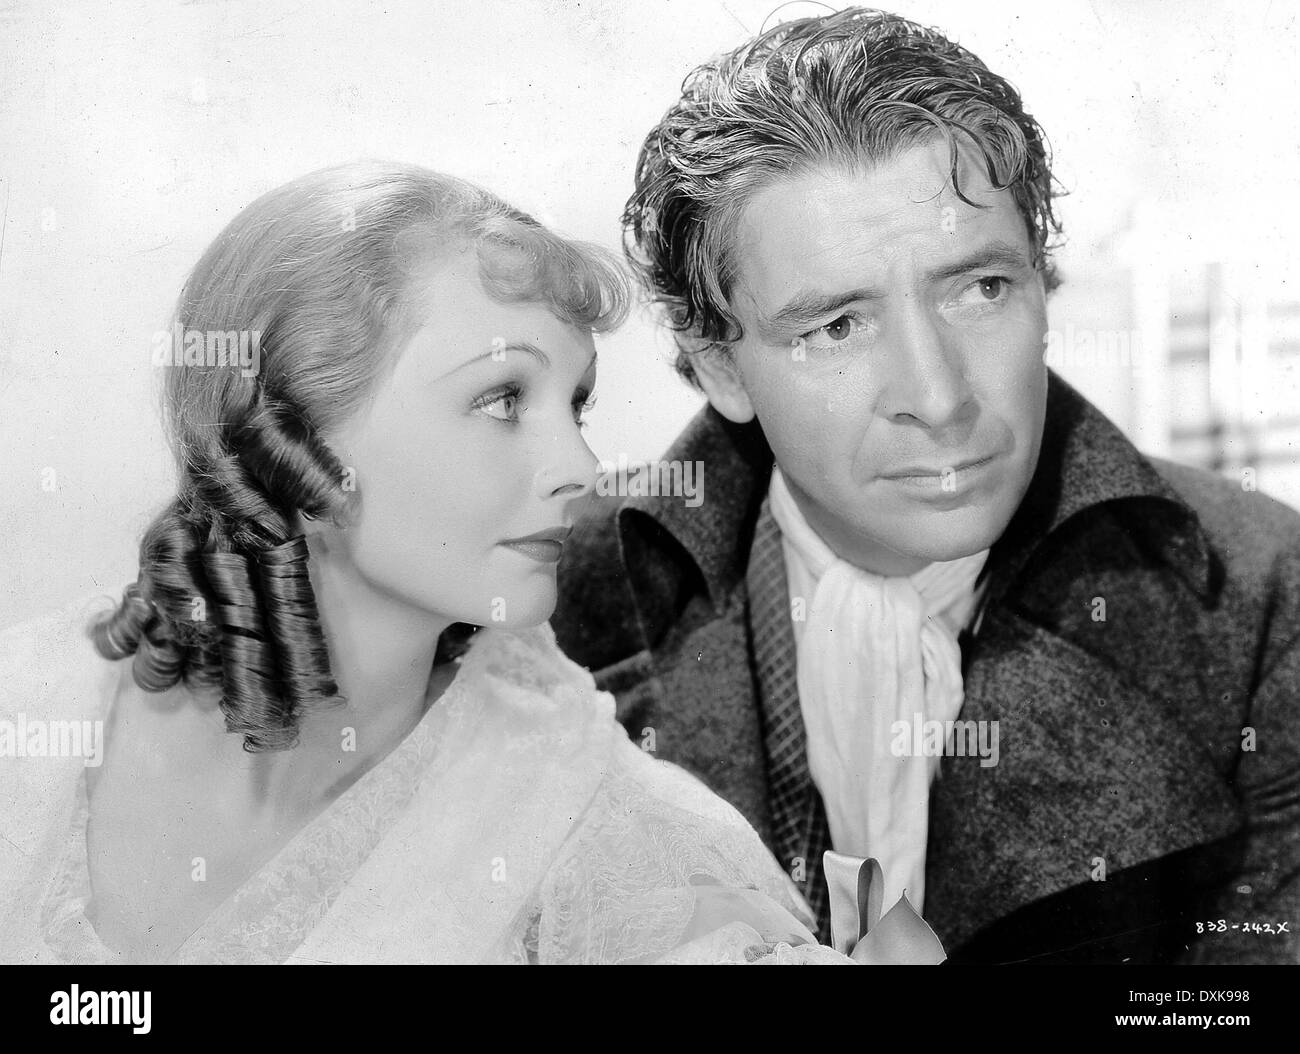 Allan as lucie manette colman had long wanted to play sydney car - A Tale Of Two Cities Us1935 Elizabeth Allan Ronald Colman Stock Image